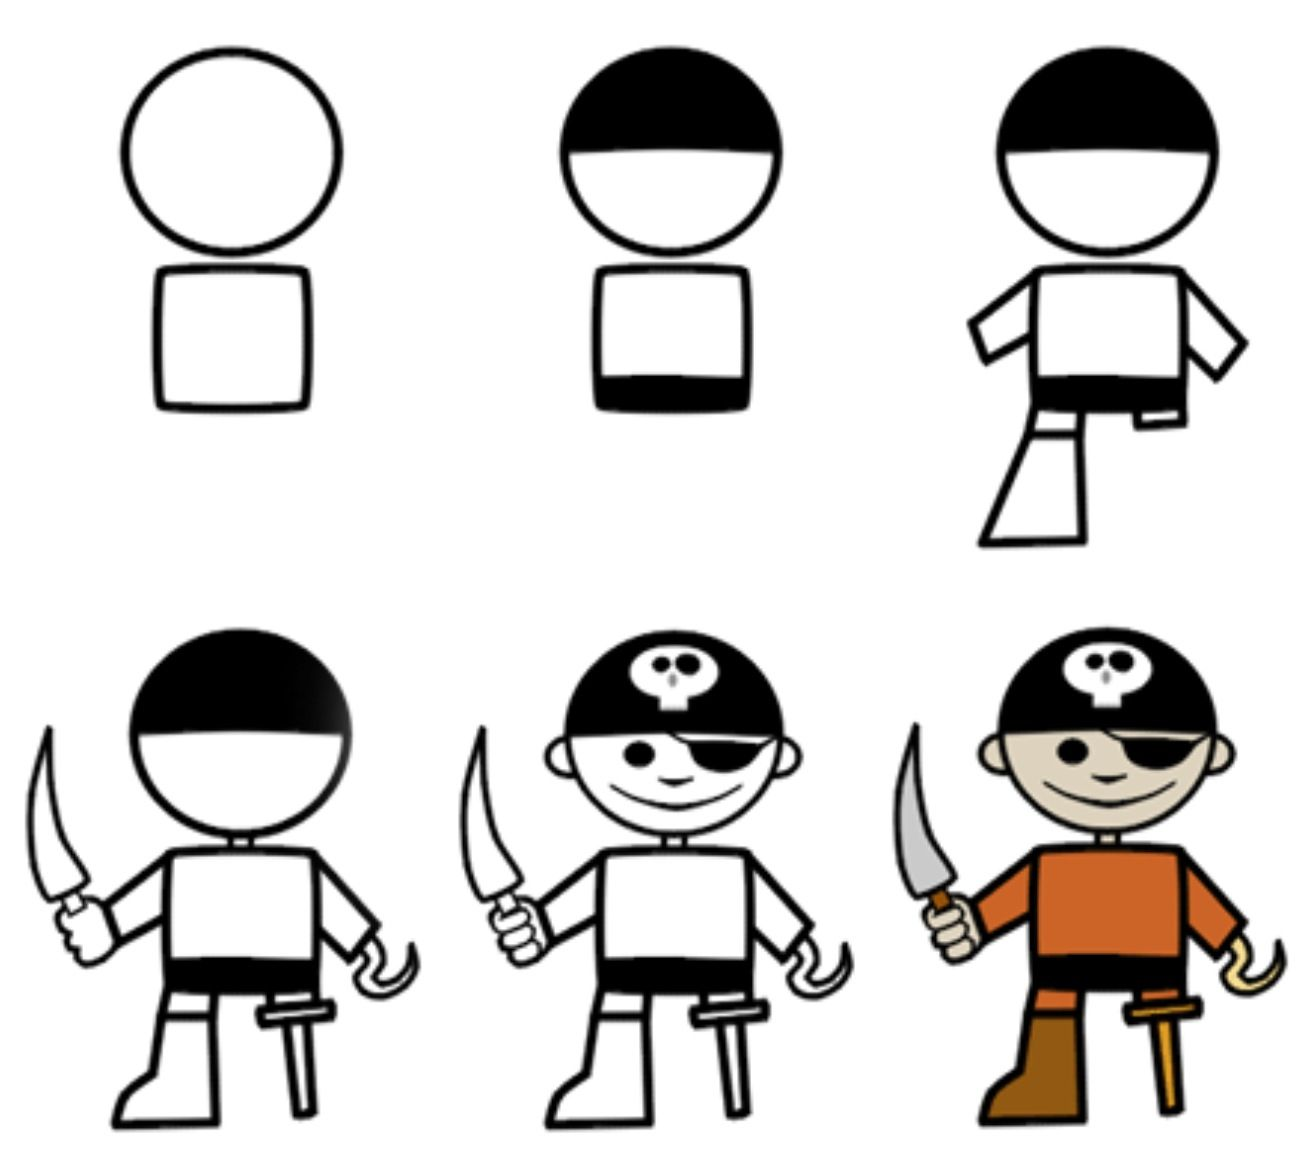 How to draw a pirate.